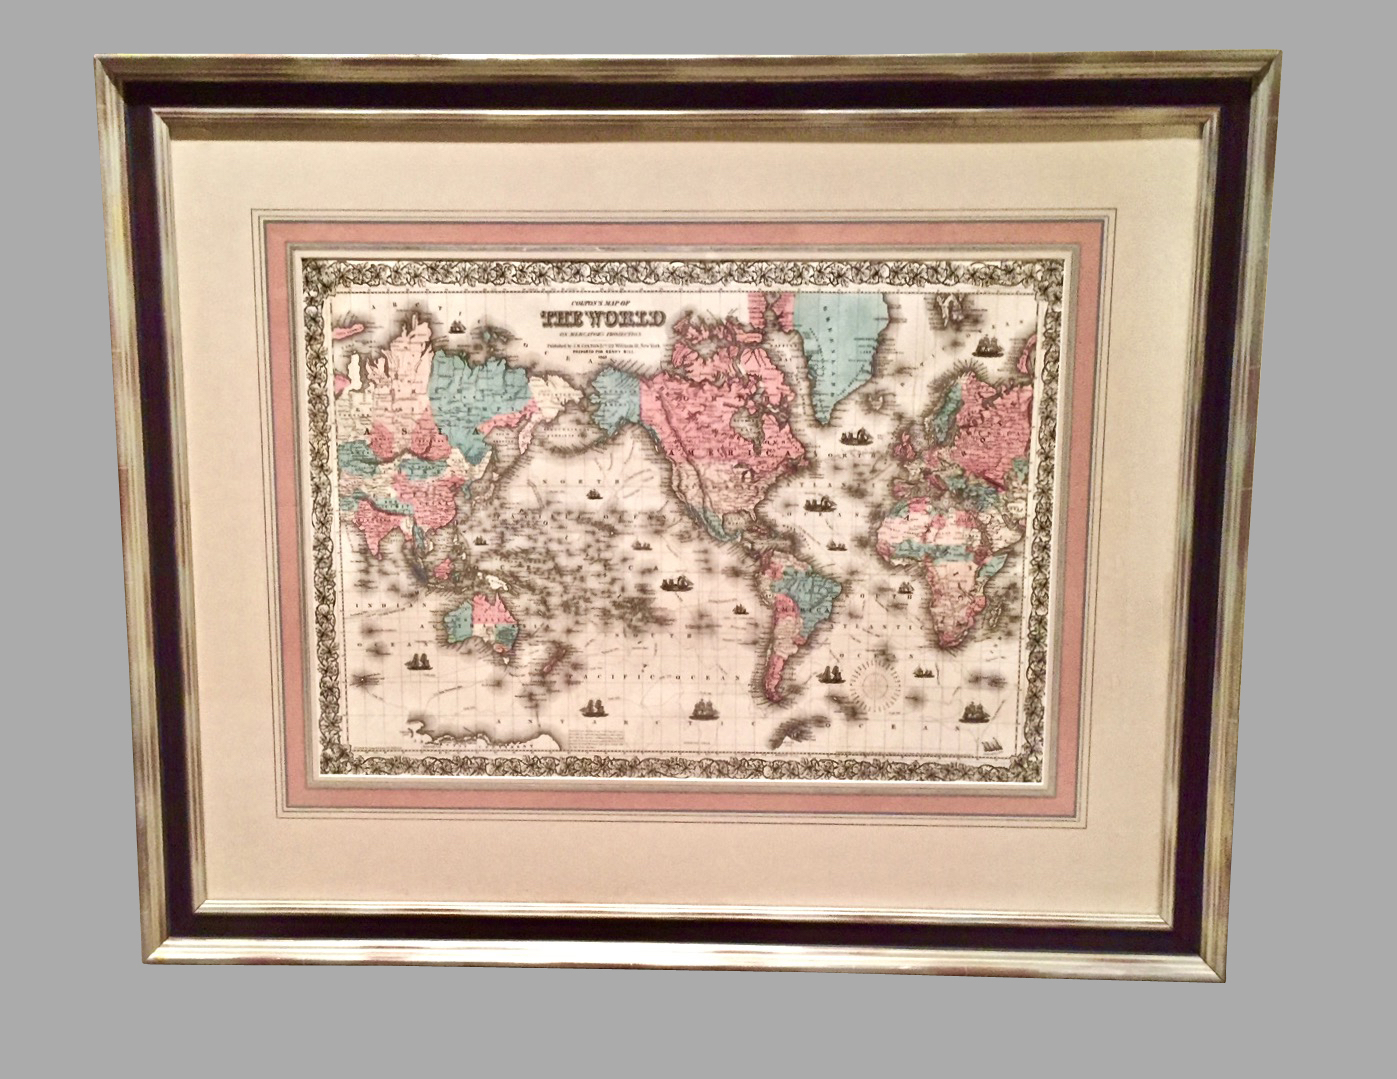 World Map by J.H. Colton 1860 Custom Framed with French Mat | DANIEL STEIN Antiques San Francisco CA